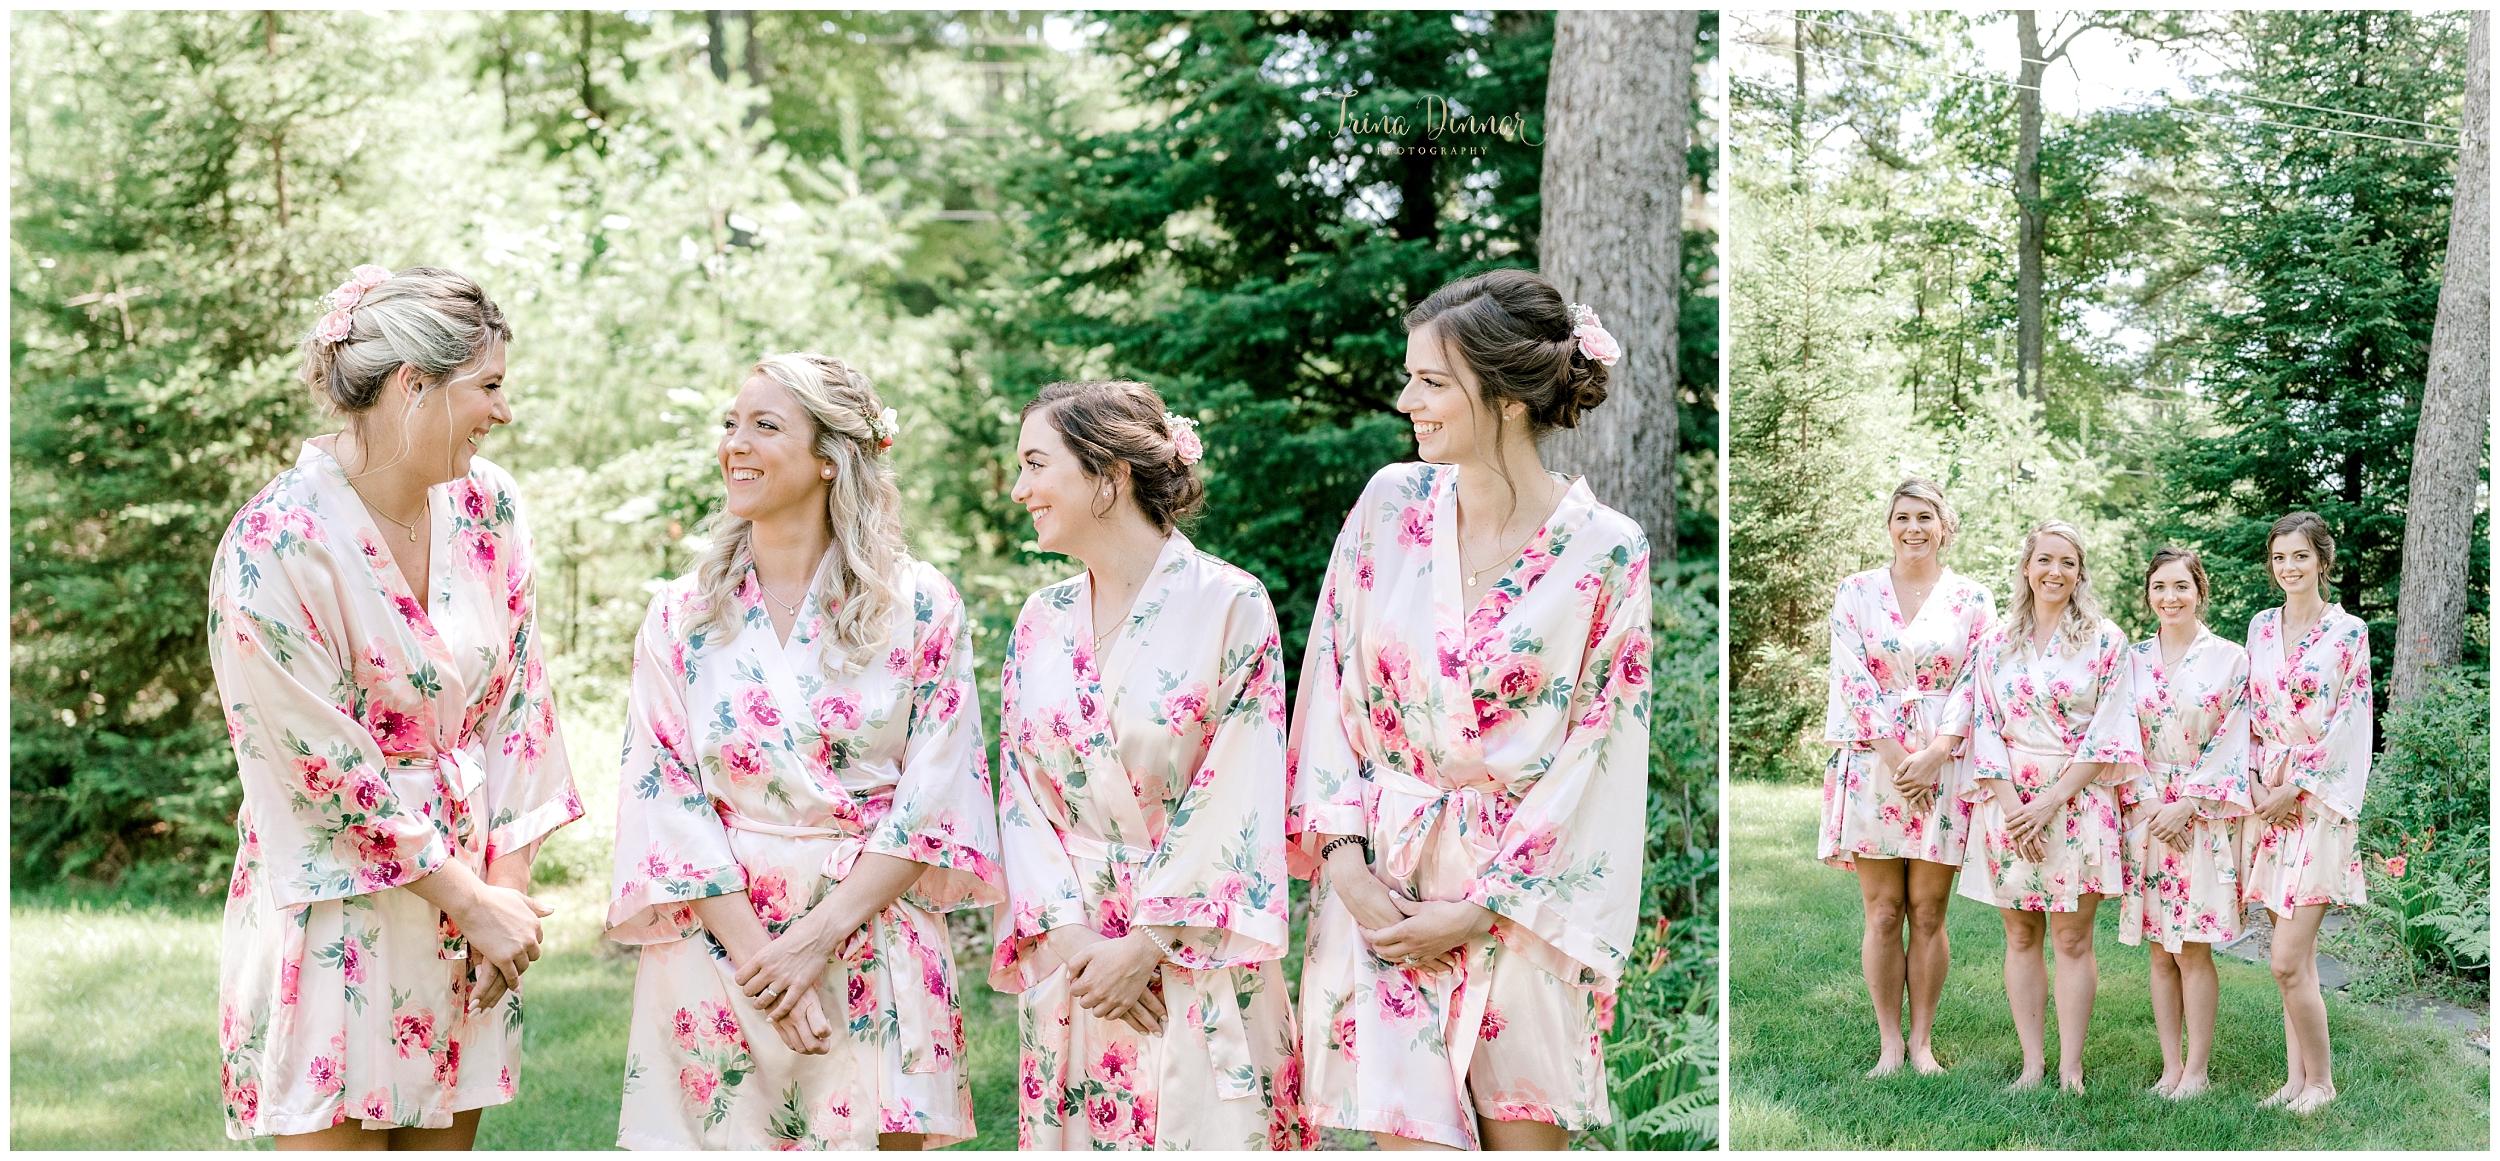 Ladies Getting Ready for Wedding with Robes in Maine.